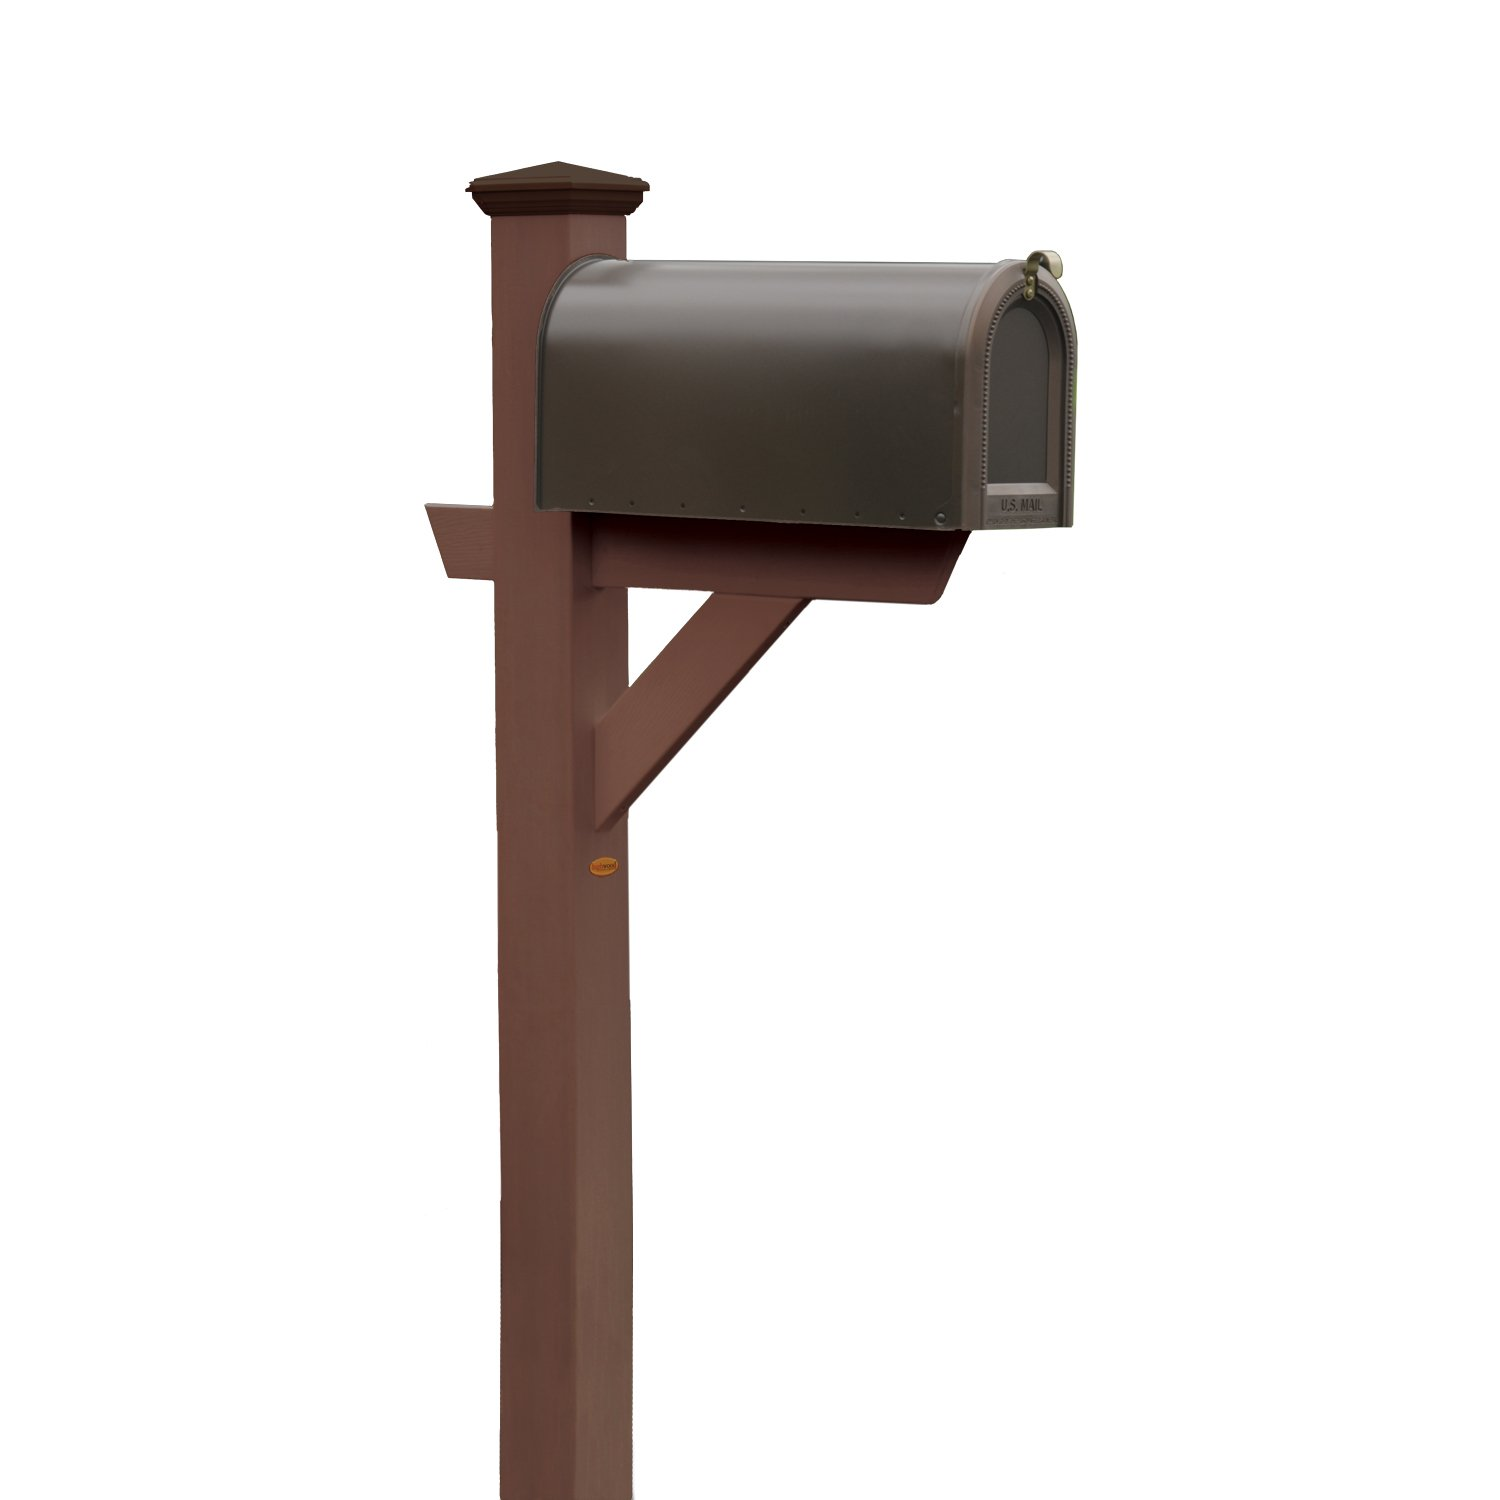 Phat Tommy Outdoor Recycled Poly Highwood Mailbox Post–Made in USA, Eco-Friendly Patio Furniture, Clearance